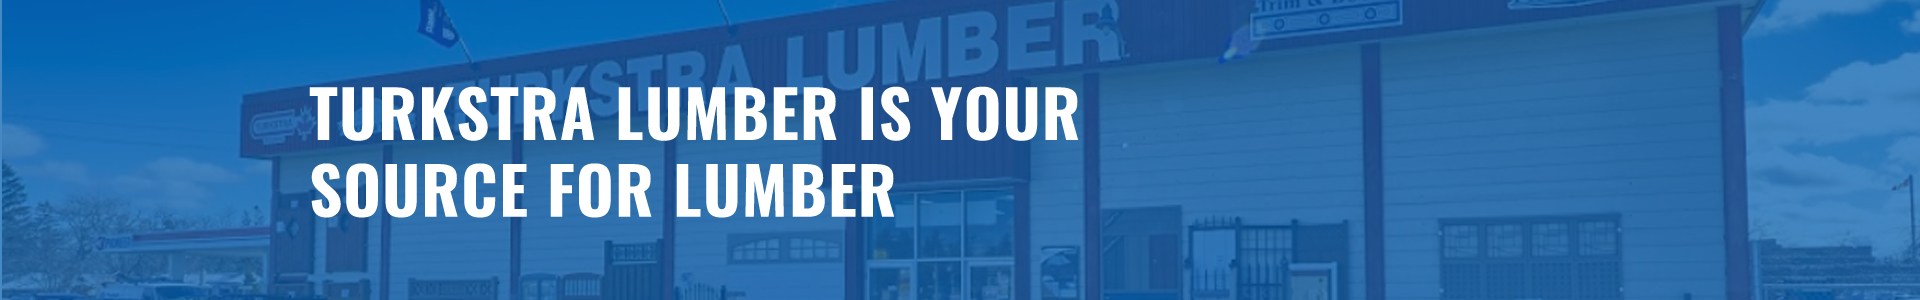 Turkstra Lumber Since 1953 - Brantford fences, decks, windows, trim, doors, hardware, install, trusses, engineered floor systems